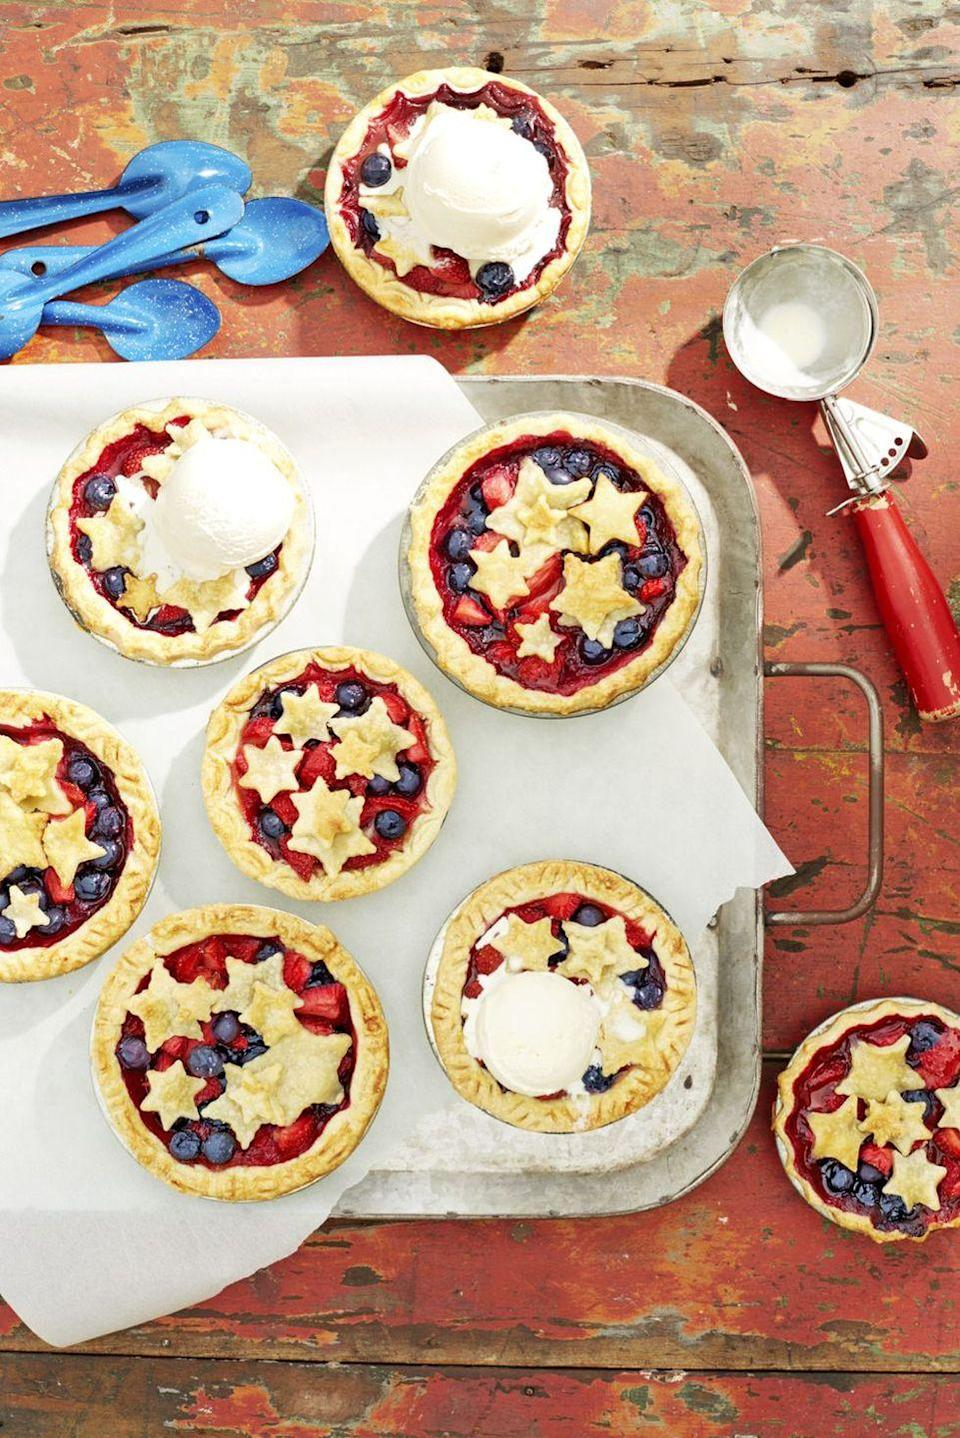 """<p>Personal-sized berry pies are a perfect Memorial Day recipe. A scoop of <a href=""""https://www.countryliving.com/food-drinks/recipes/a3404/vanilla-ice-cream-recipe-clv0610/"""" rel=""""nofollow noopener"""" target=""""_blank"""" data-ylk=""""slk:homemade vanilla ice cream"""" class=""""link rapid-noclick-resp"""">homemade vanilla ice cream</a> makes them especially irresistible. </p><p><strong><a href=""""https://www.countryliving.com/food-drinks/a21348015/mini-stars-berry-pies-recipe/"""" rel=""""nofollow noopener"""" target=""""_blank"""" data-ylk=""""slk:Get the recipe"""" class=""""link rapid-noclick-resp"""">Get the recipe</a>.</strong></p>"""